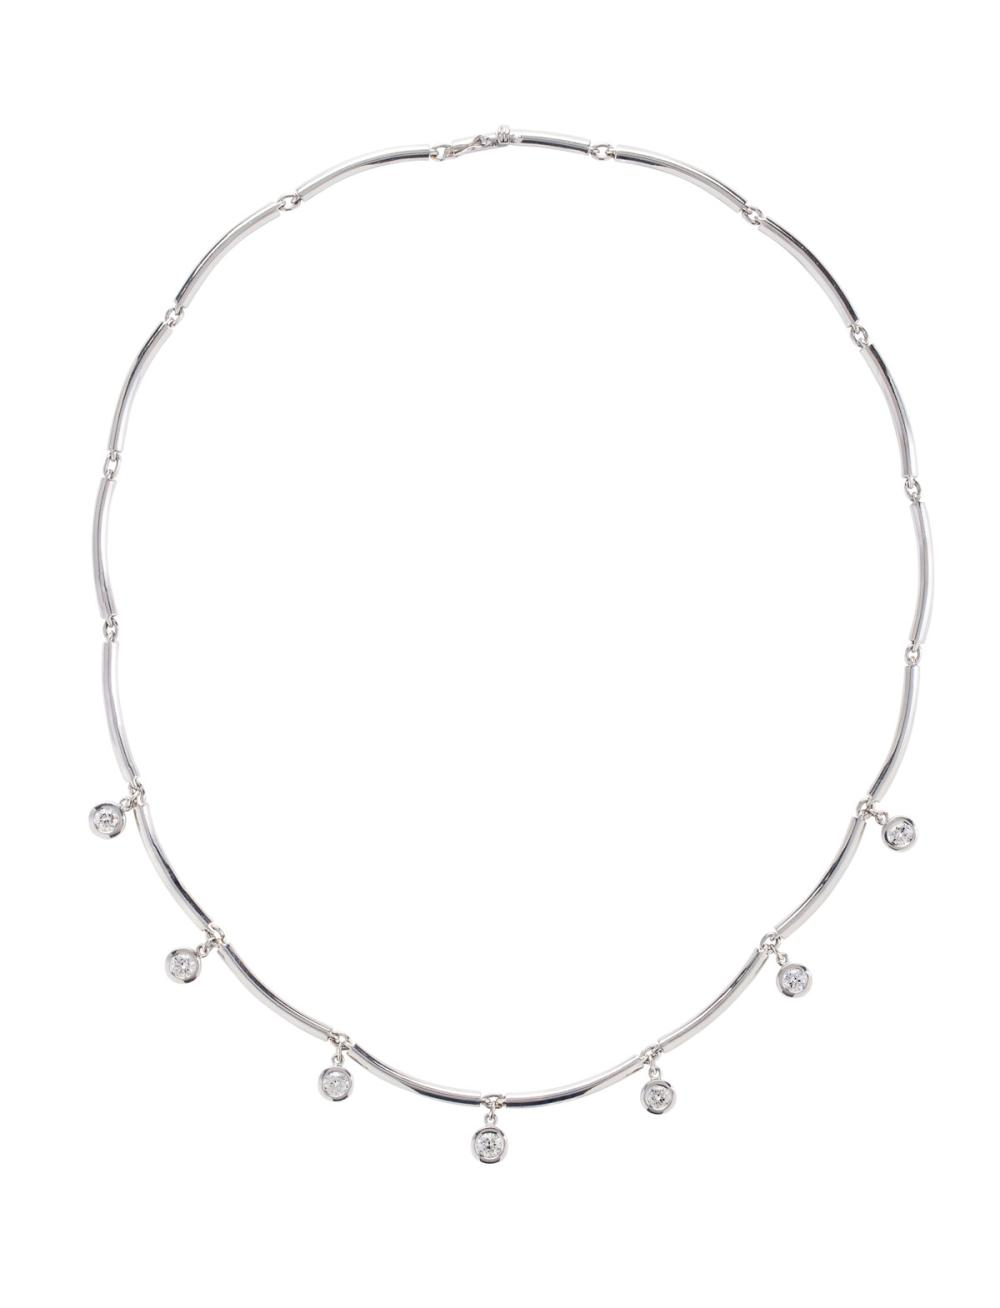 18k White Gold And Diamond Choker Necklace